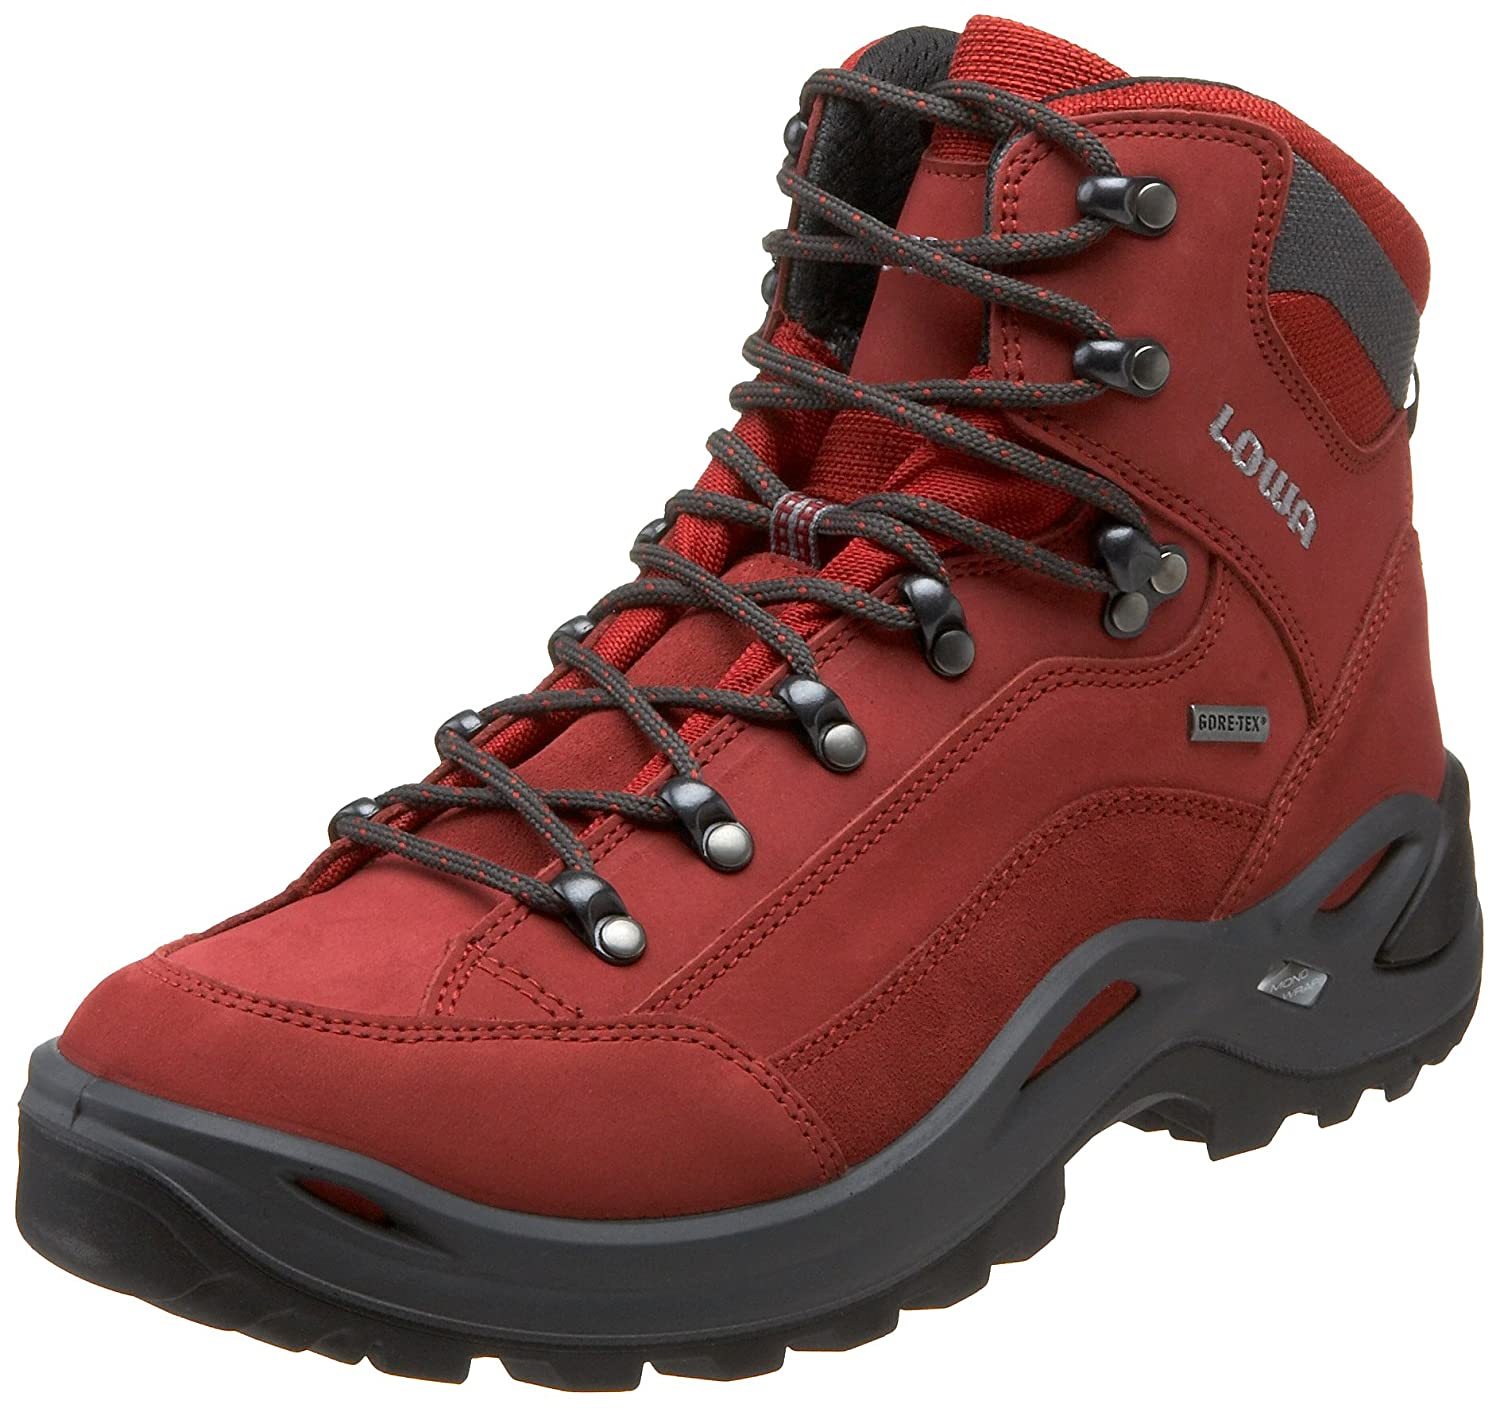 Lowa Women's Renegade GTX Mid Hiking Boot B0042ANBO6 6 B(M) US|Red